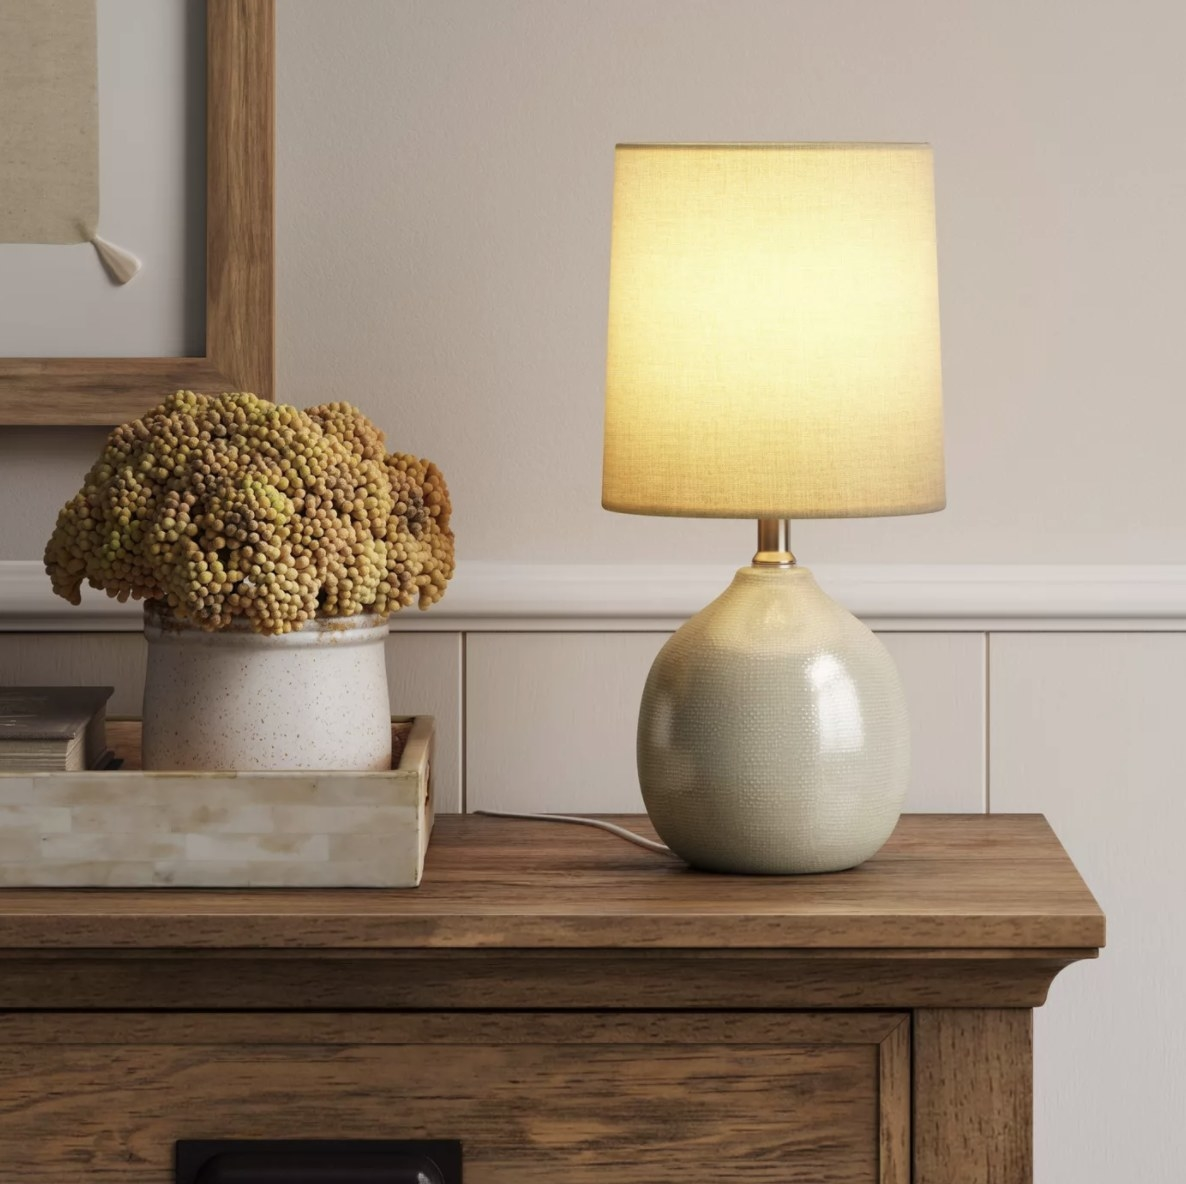 The ceramic lamp has a drum shade with a warm, yellow glow